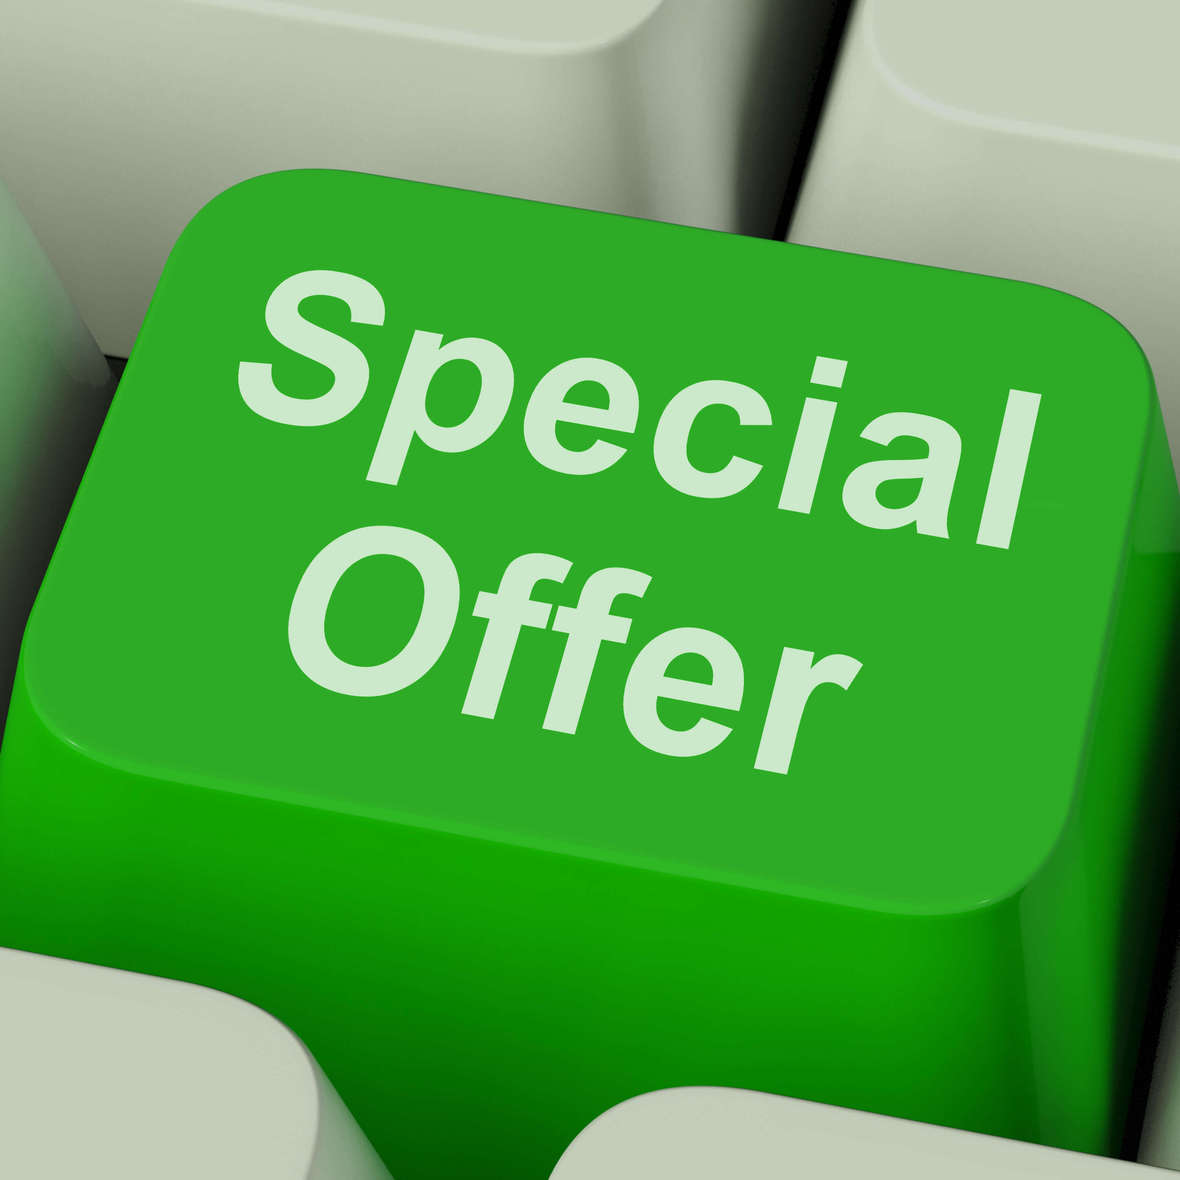 special-offer-sign-shows-promotional-discount-online M1W 1Qwd opt